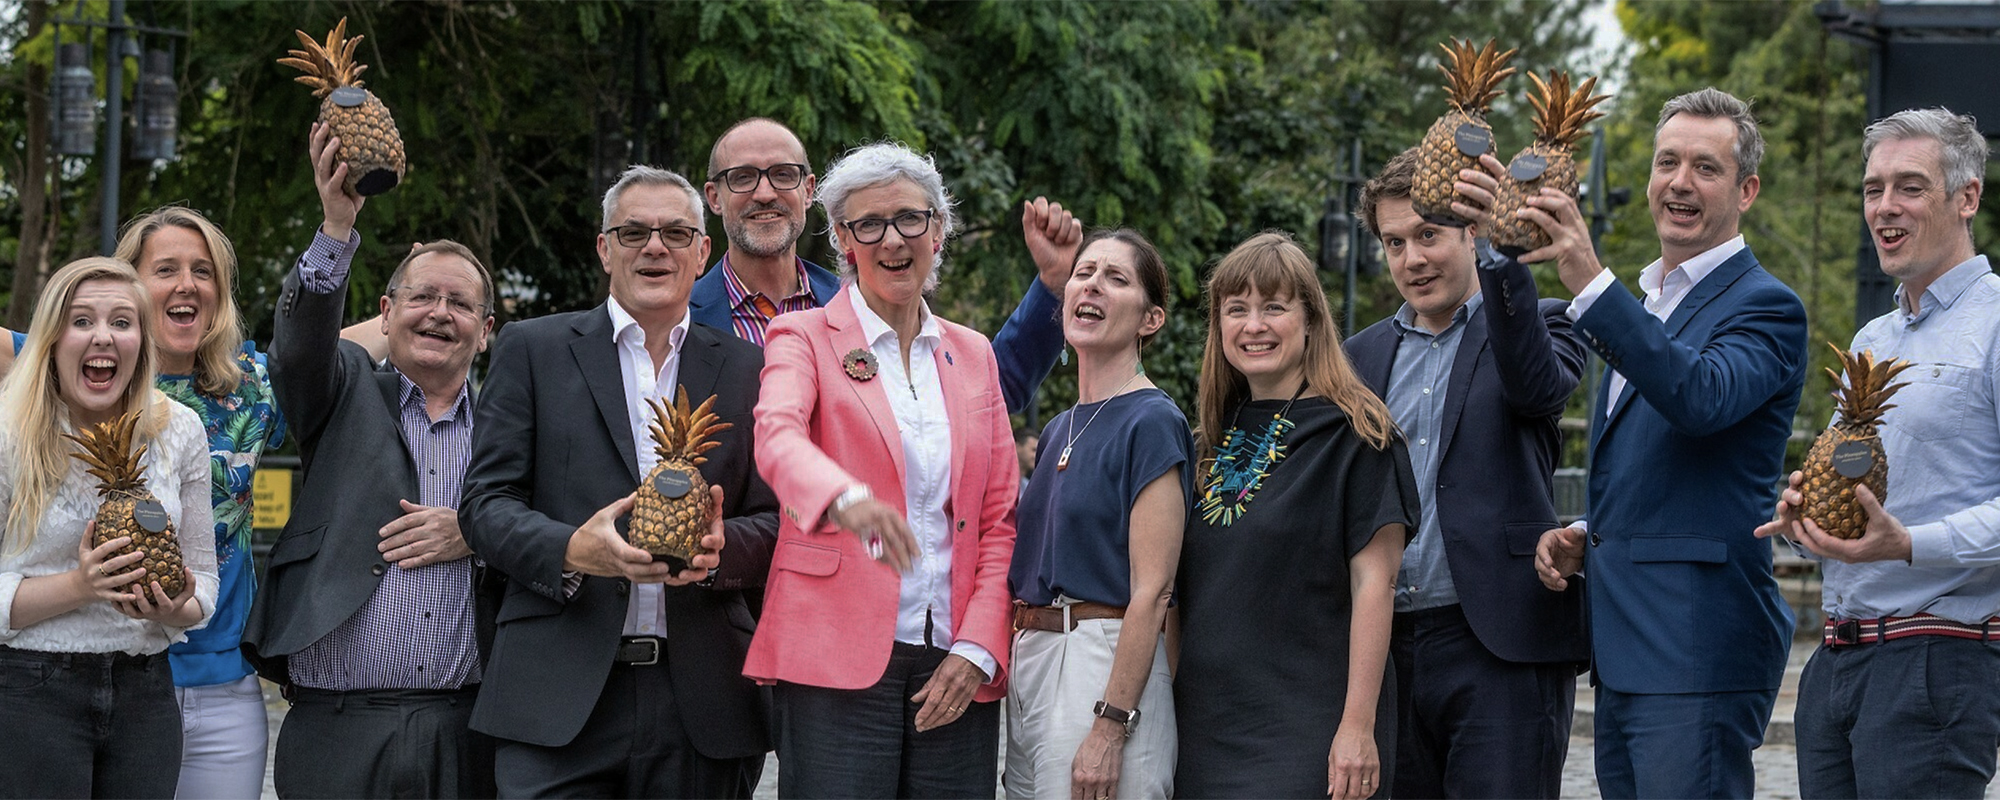 Entries now open for The Pineapples awards 2020